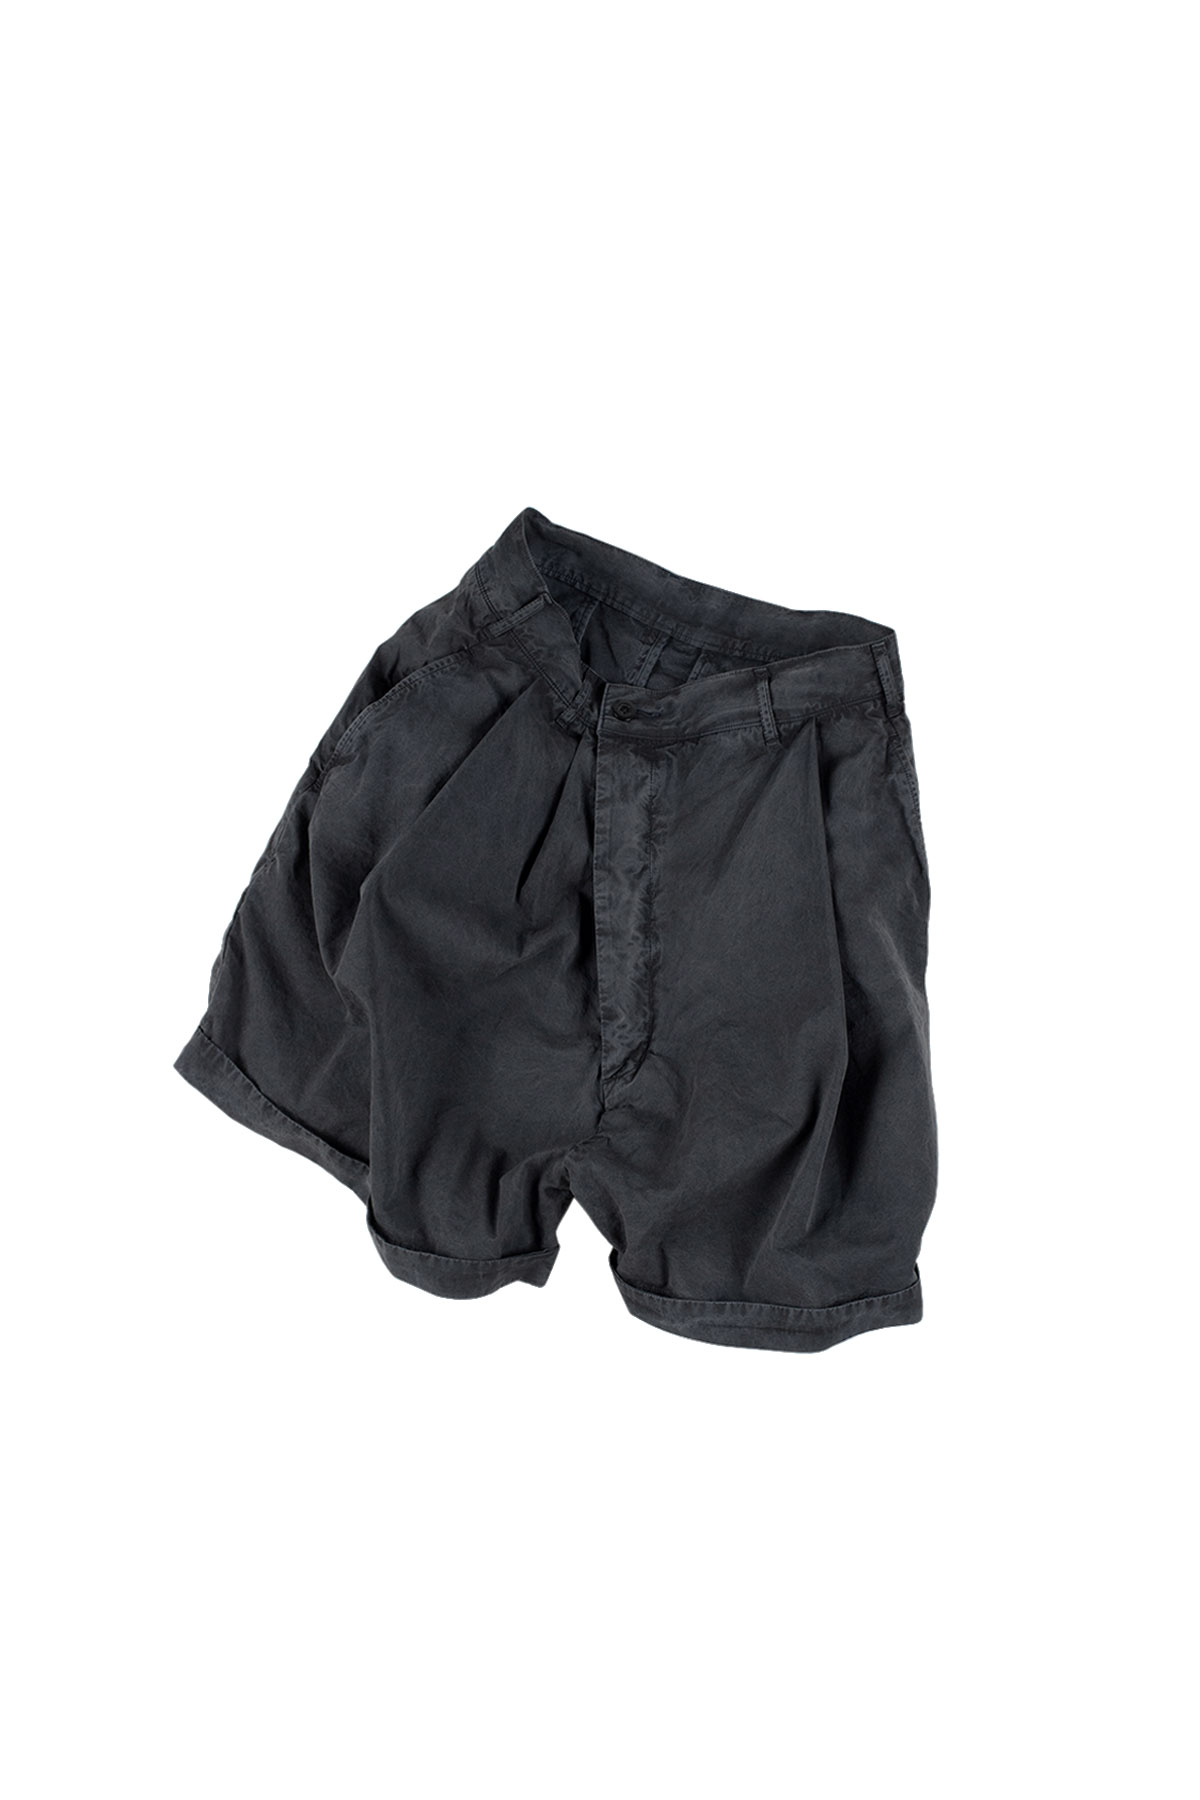 OUTIL : Pantalon Conlie (Black)